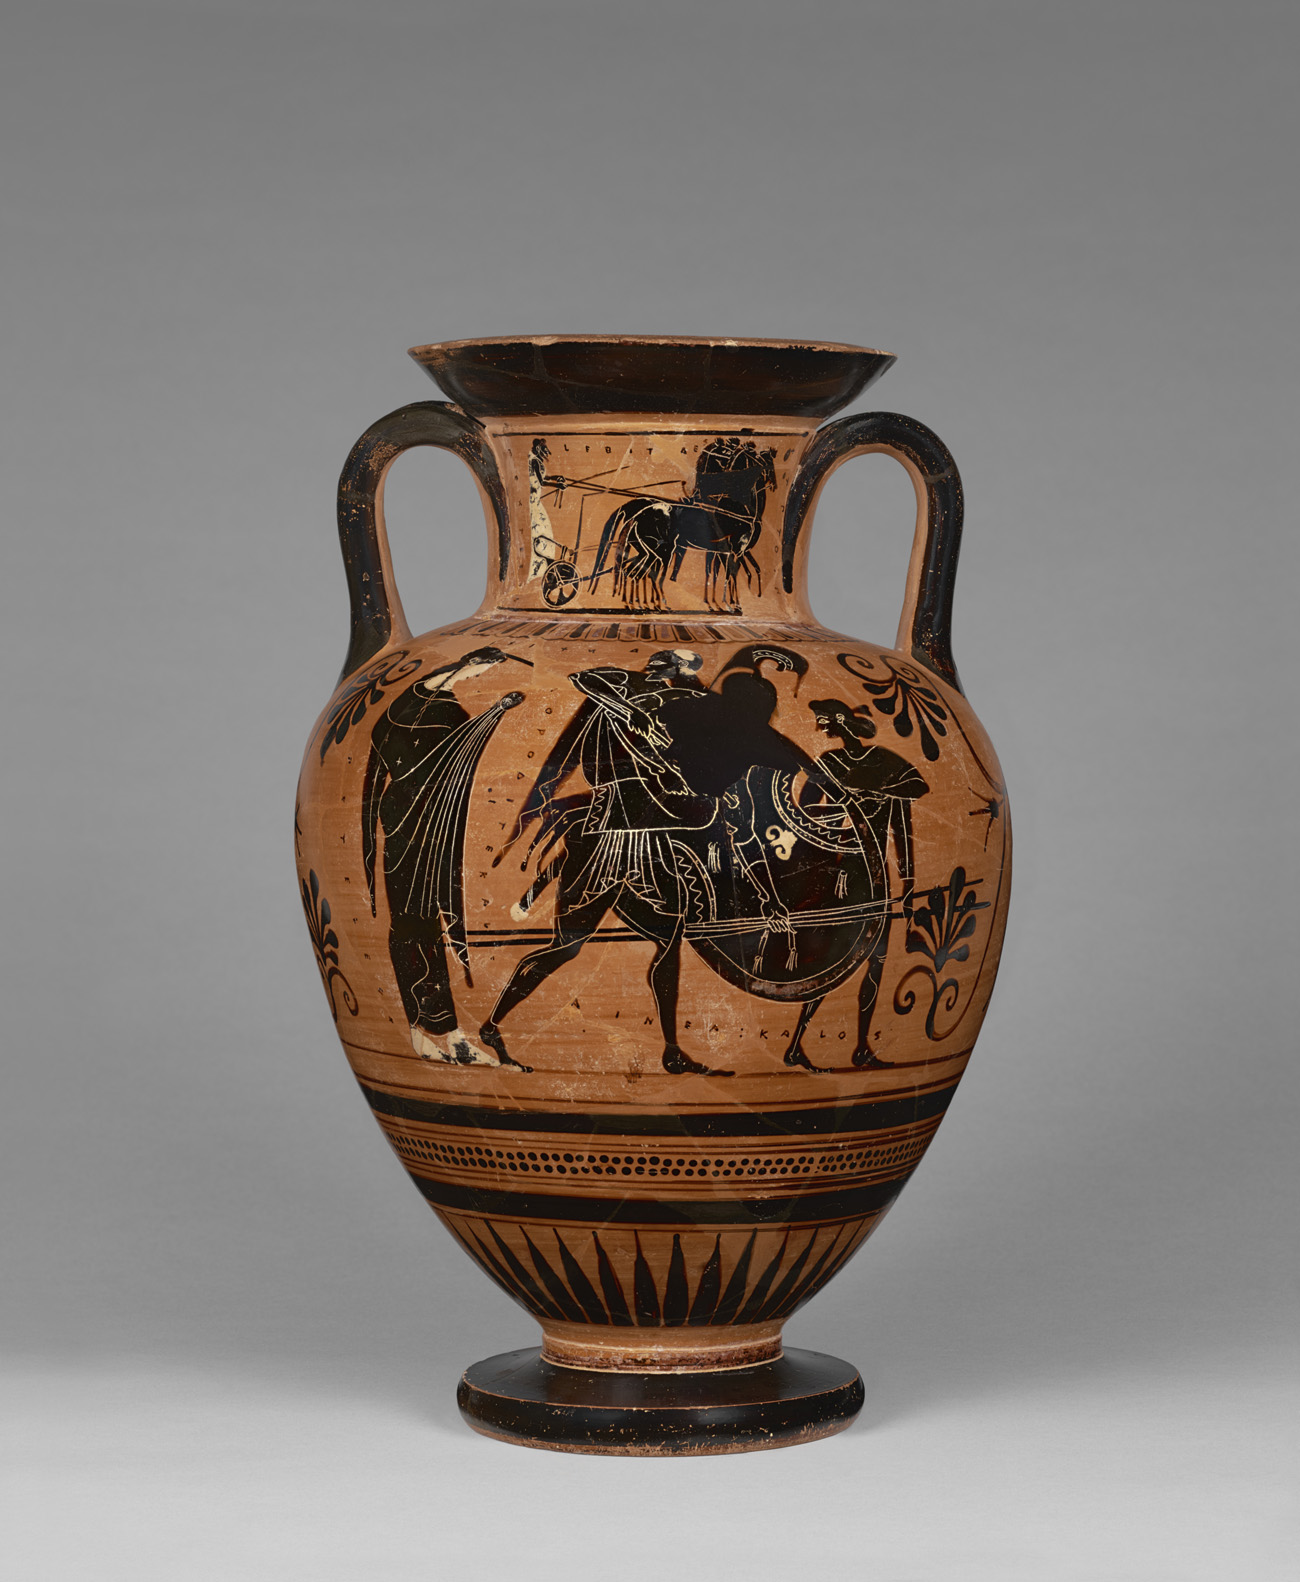 A large terracotta and black storage vessel with two small handles shows figures from Greek myth painted in black